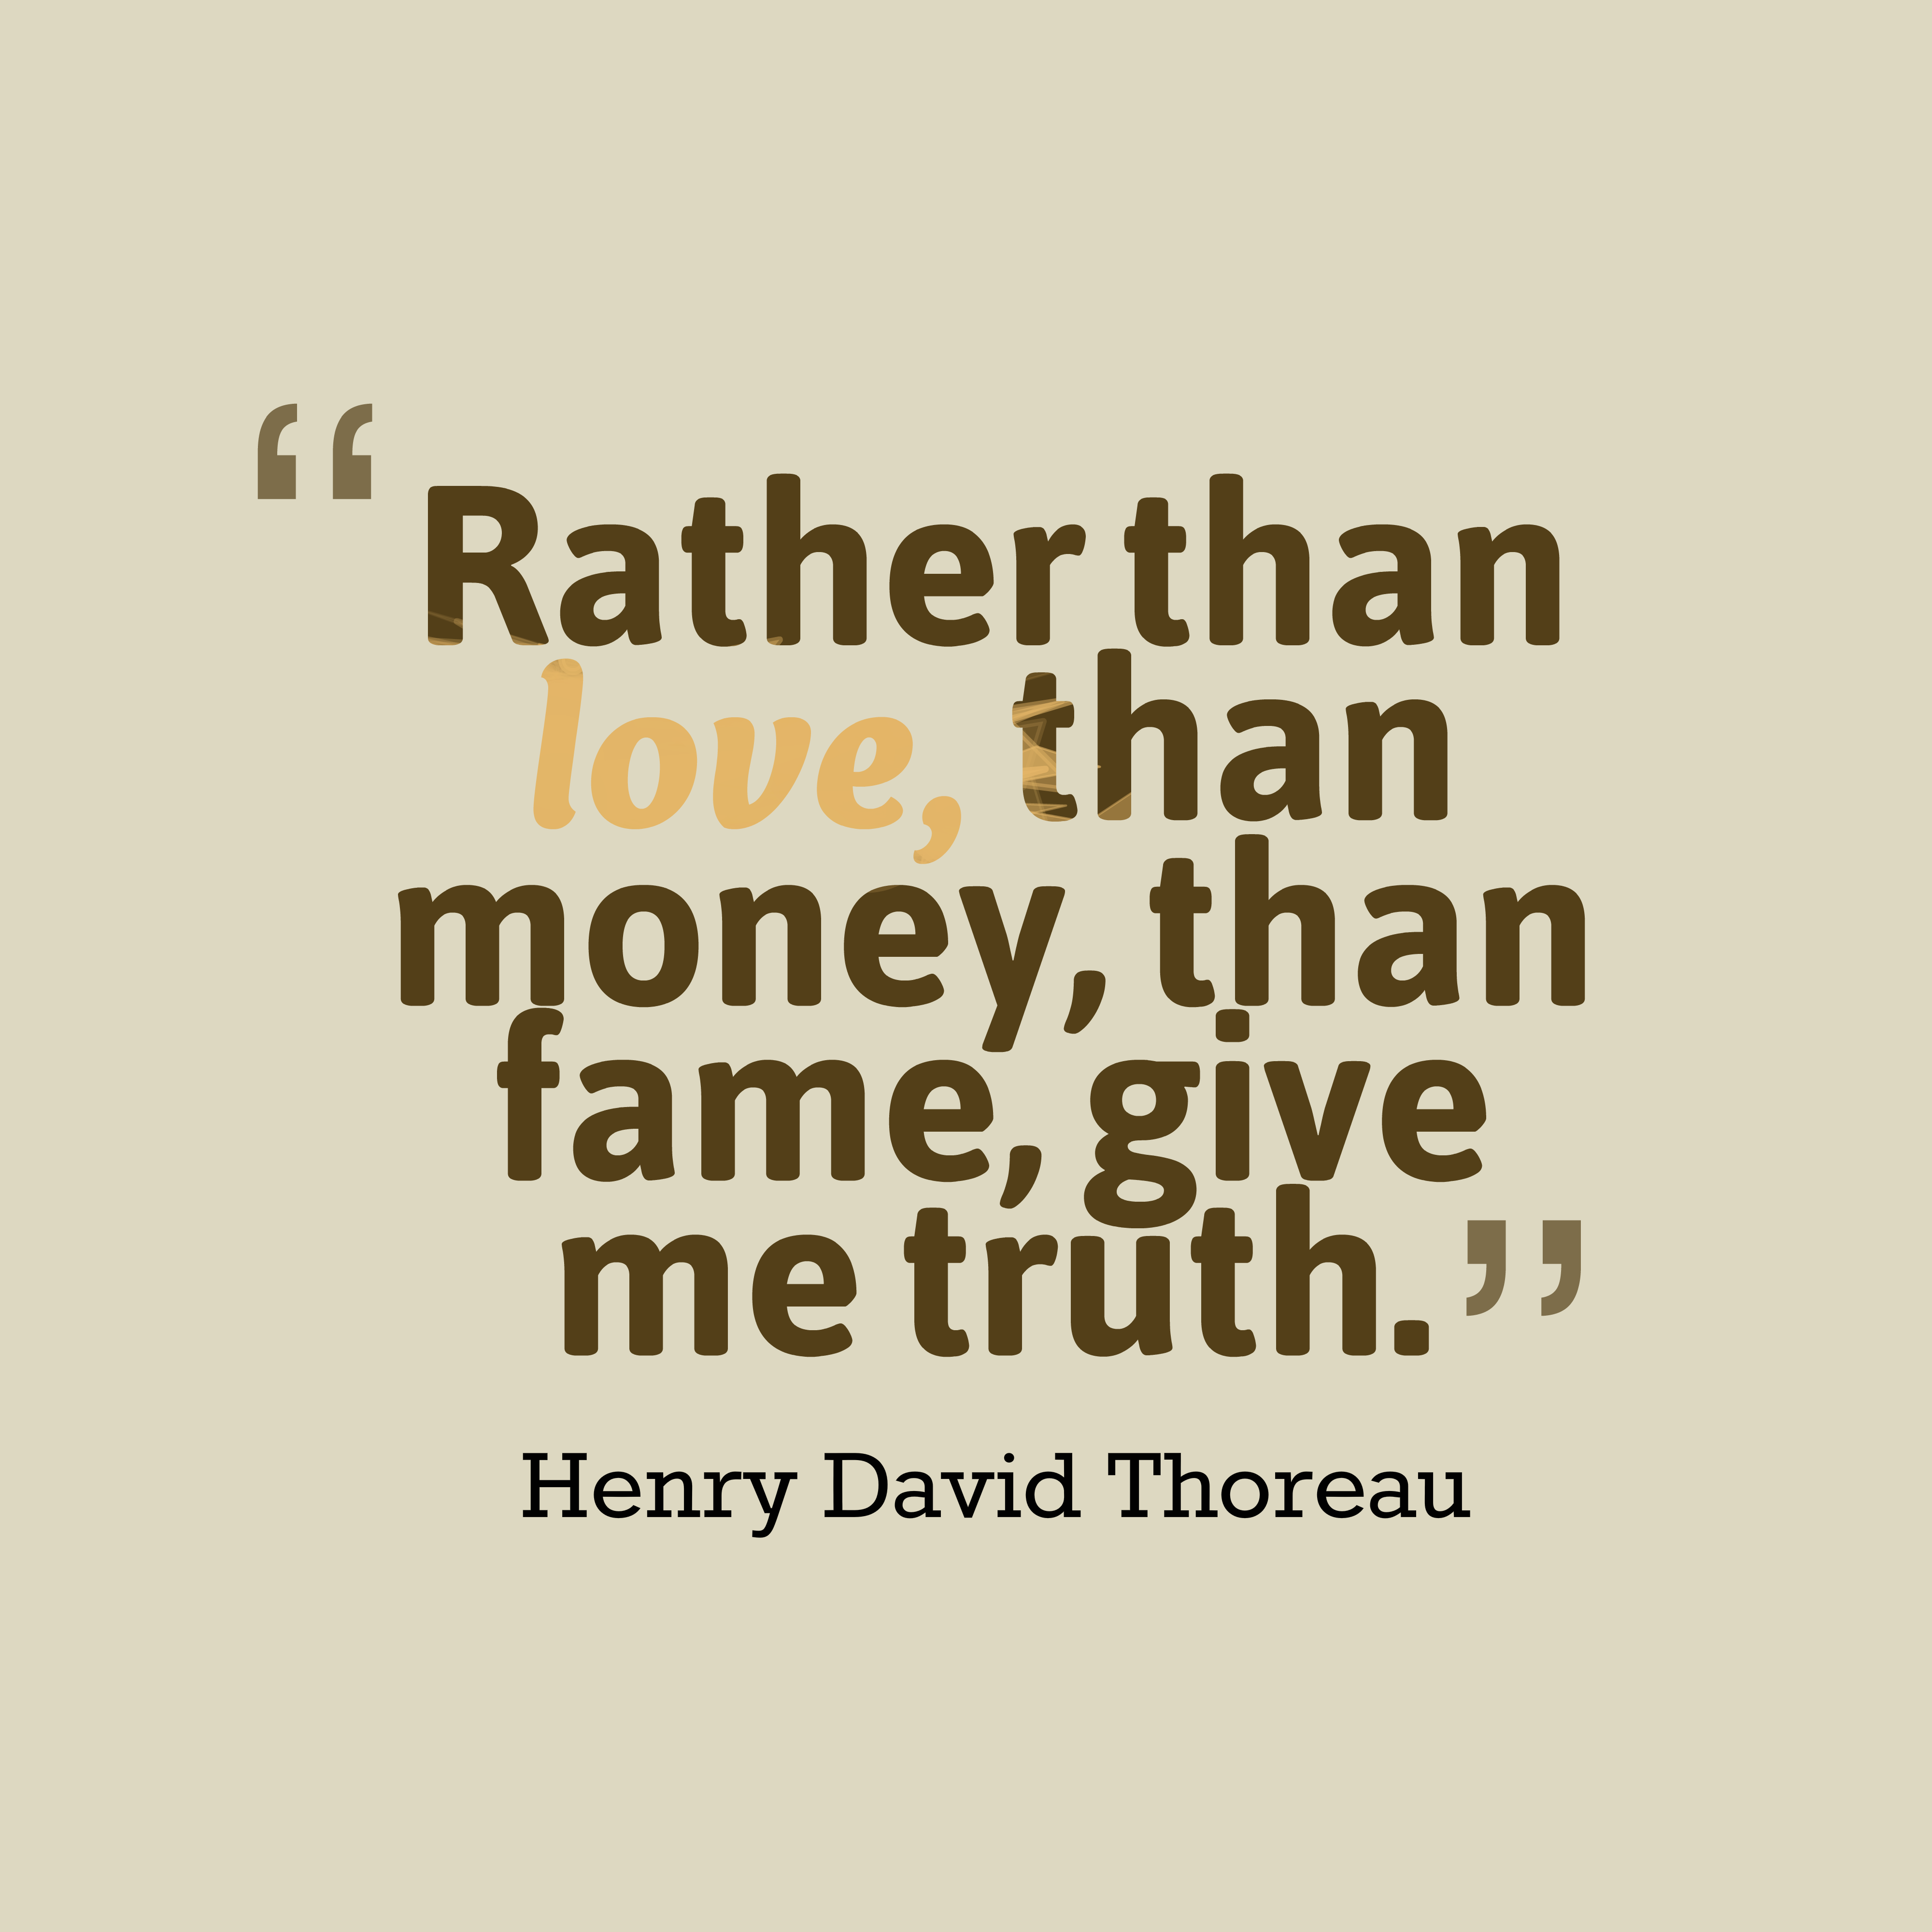 Thoreau Quotes: Henry David Thoreau Quote About Truth